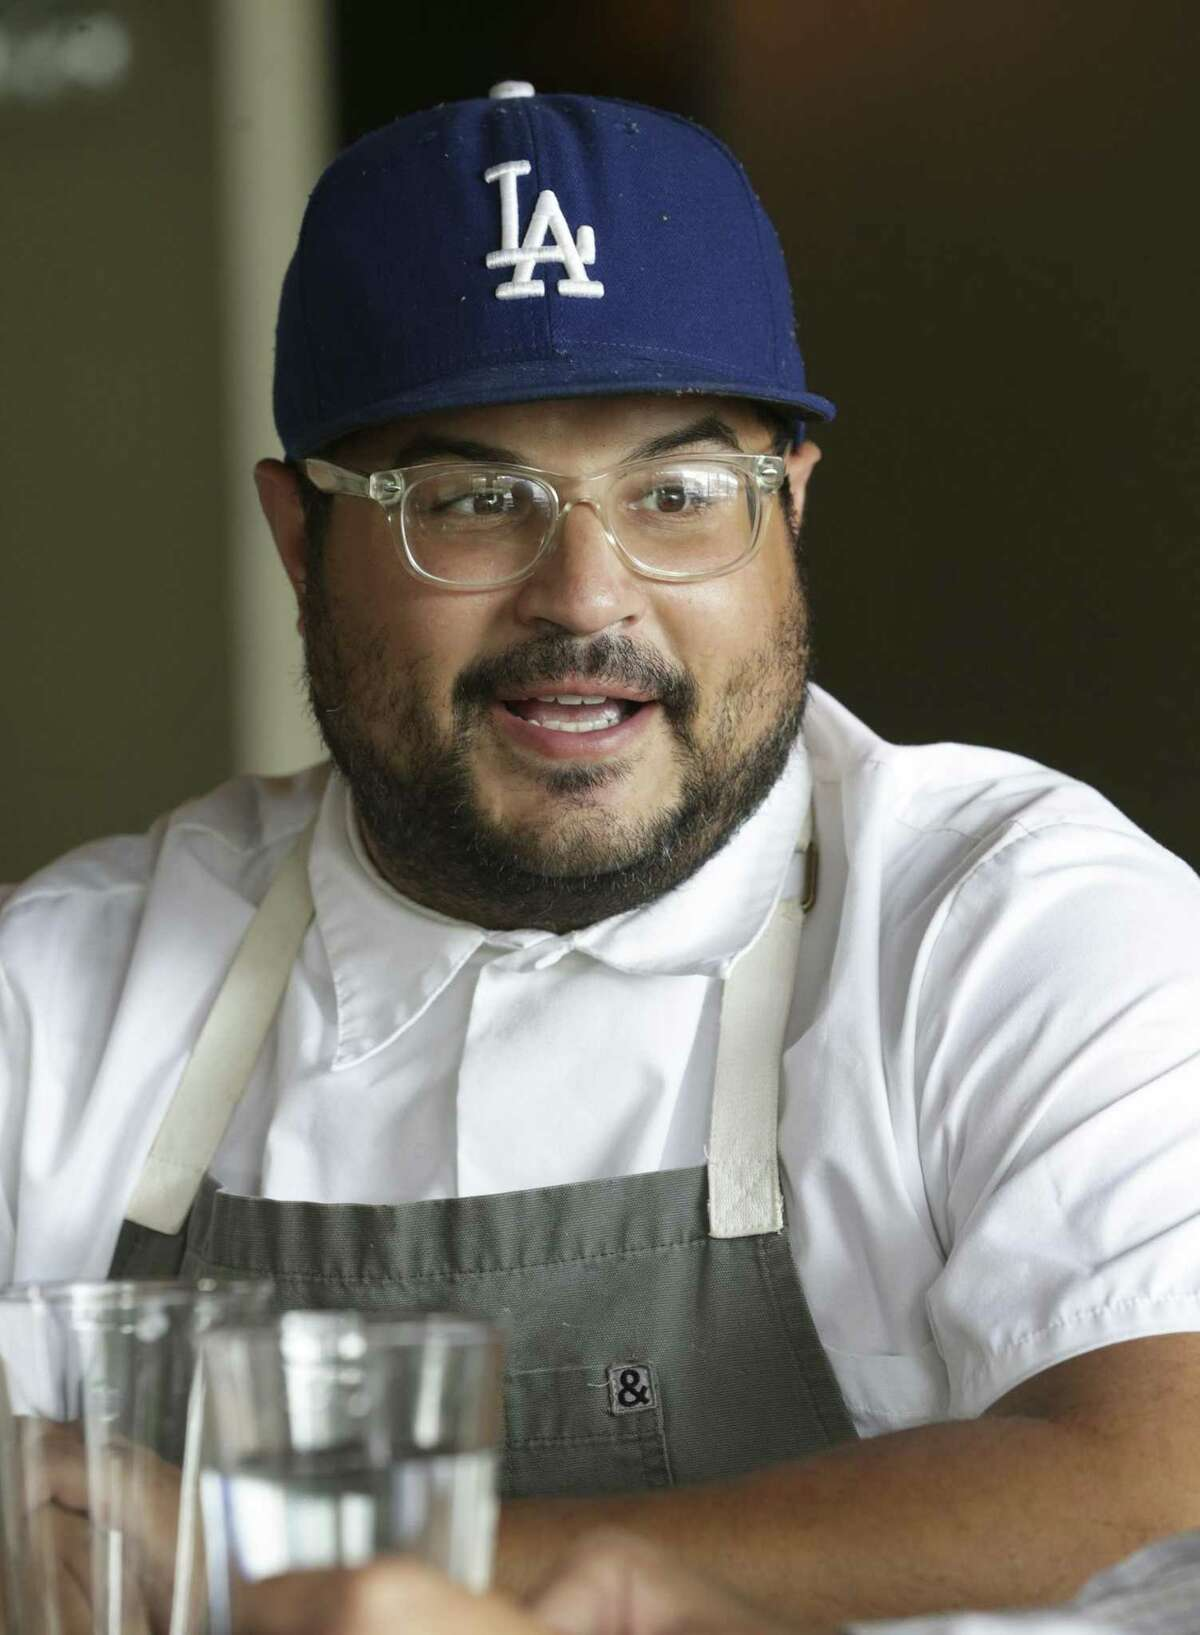 Chef Luis Colon will represent Bexar Pub at the upcoming Botánica Music Festival.